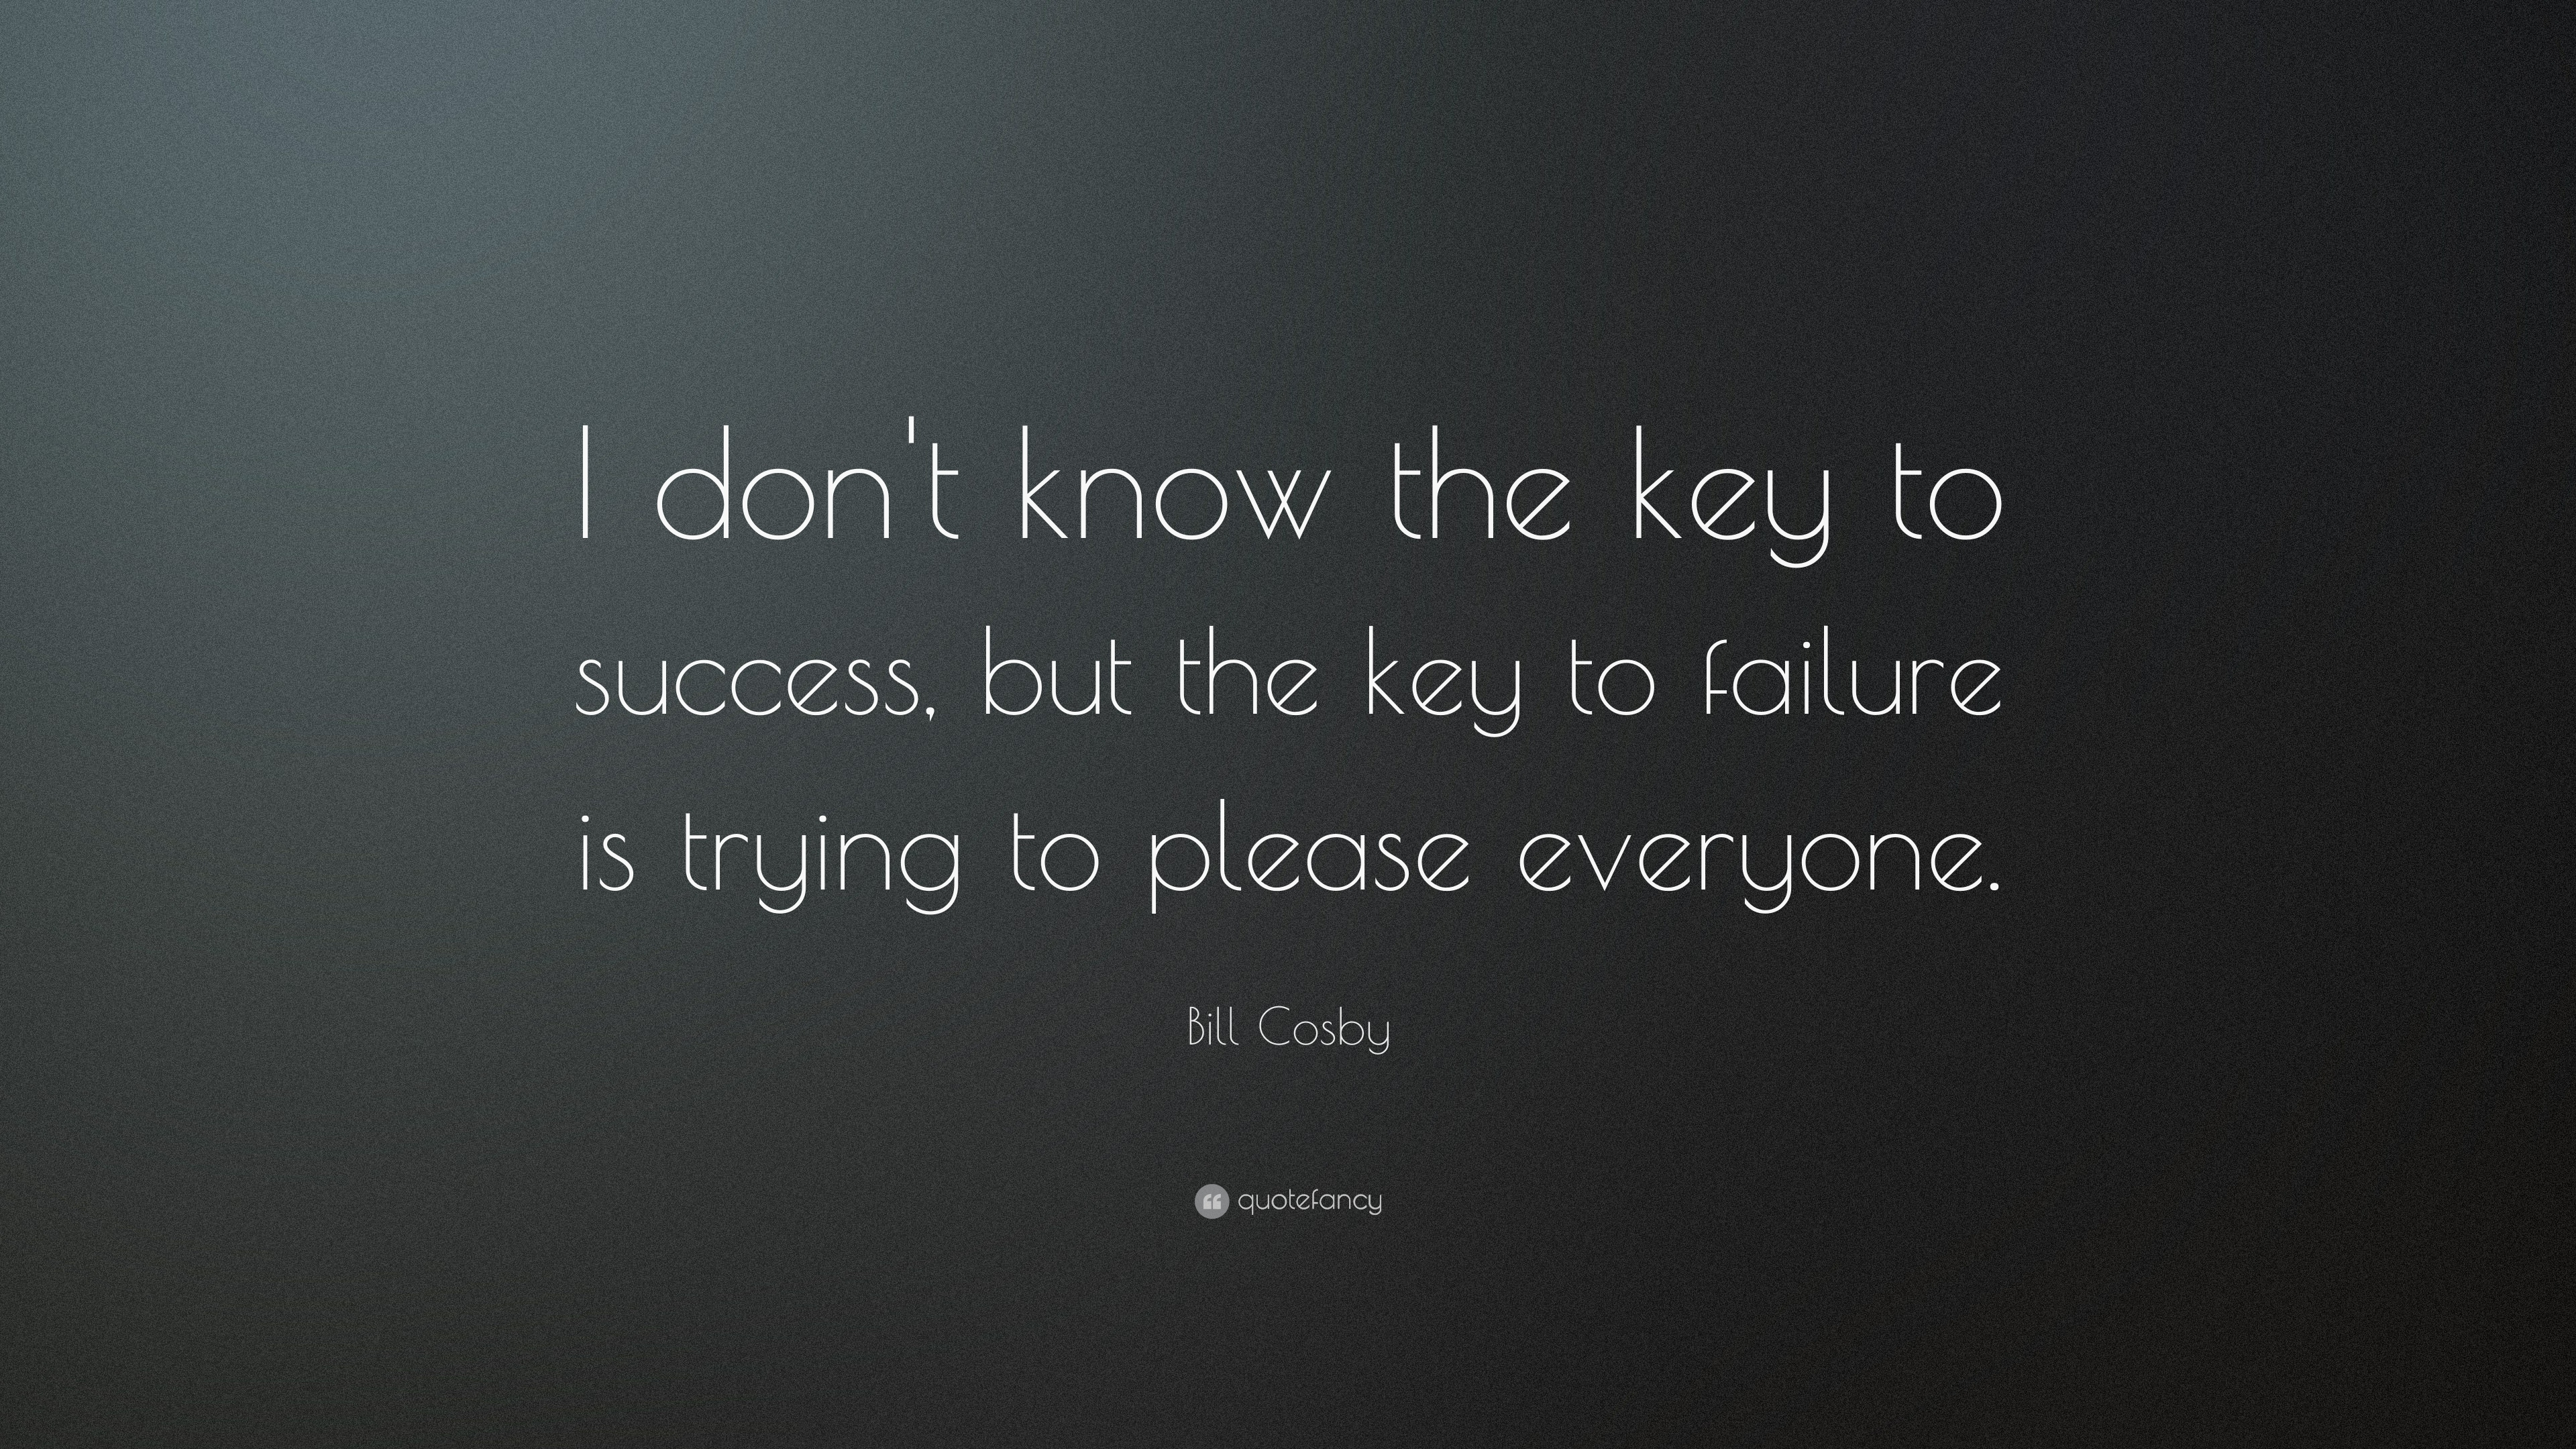 Life Beautiful Quotes Wallpapers Bill Cosby Quote I Don T Know The Key To Success But